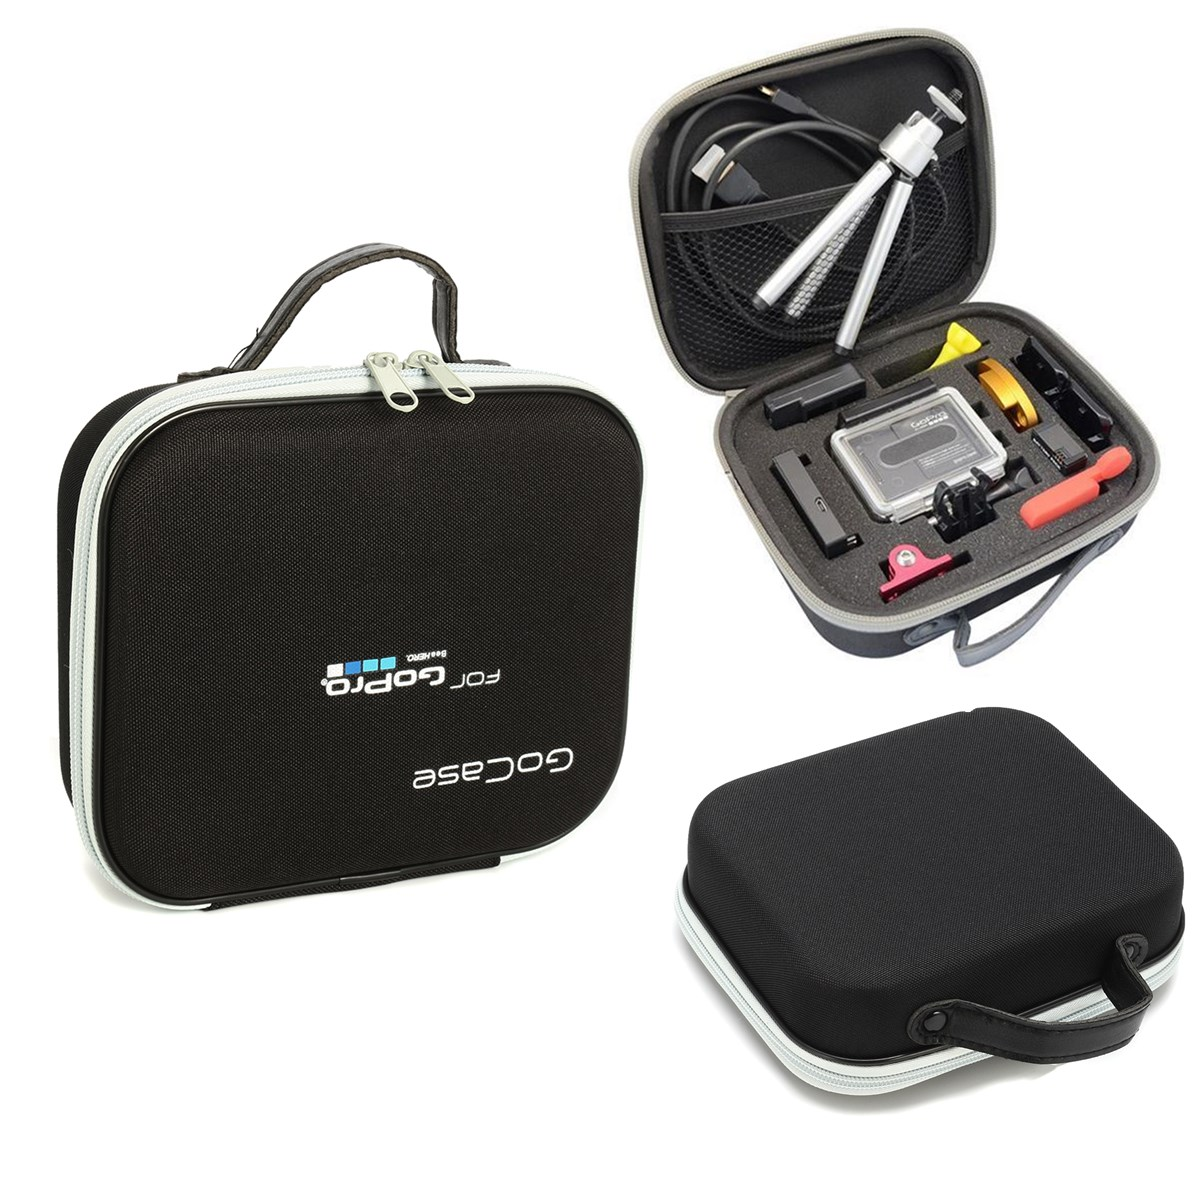 Black Waterproof Portable Compact Collection Box Storage Travel Carry Bag Case For Gopro Hero 5 4 3+